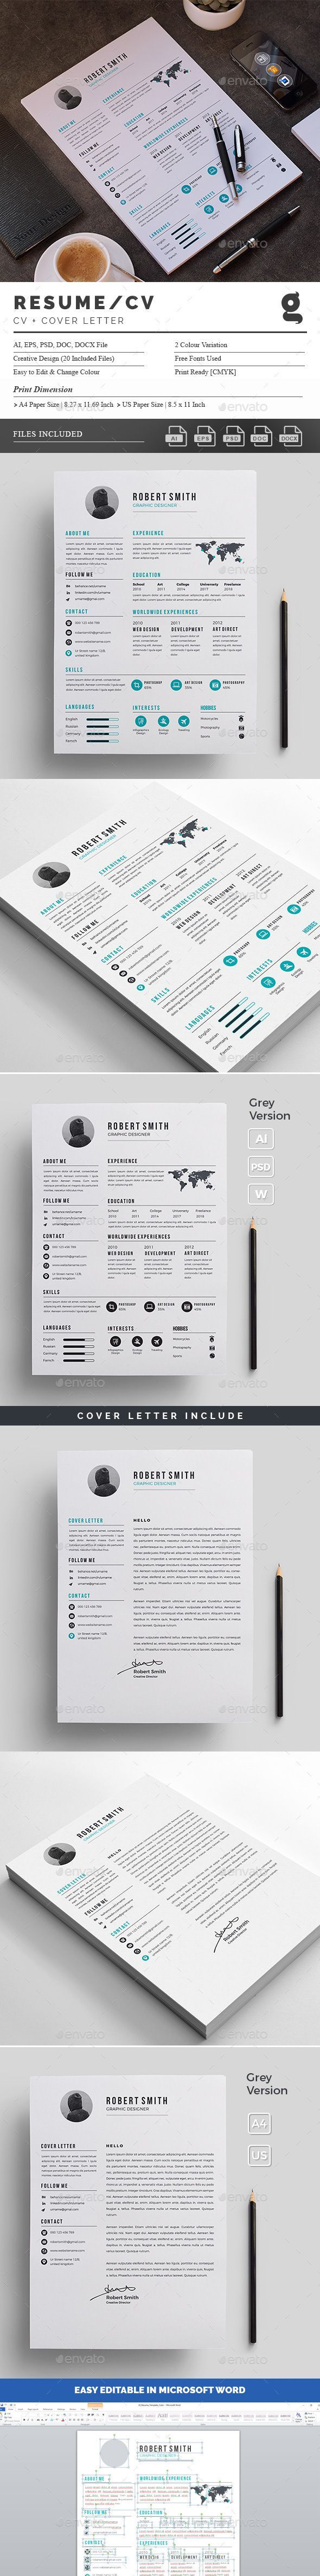 police resume template%0A   resume design concepts which get you hired